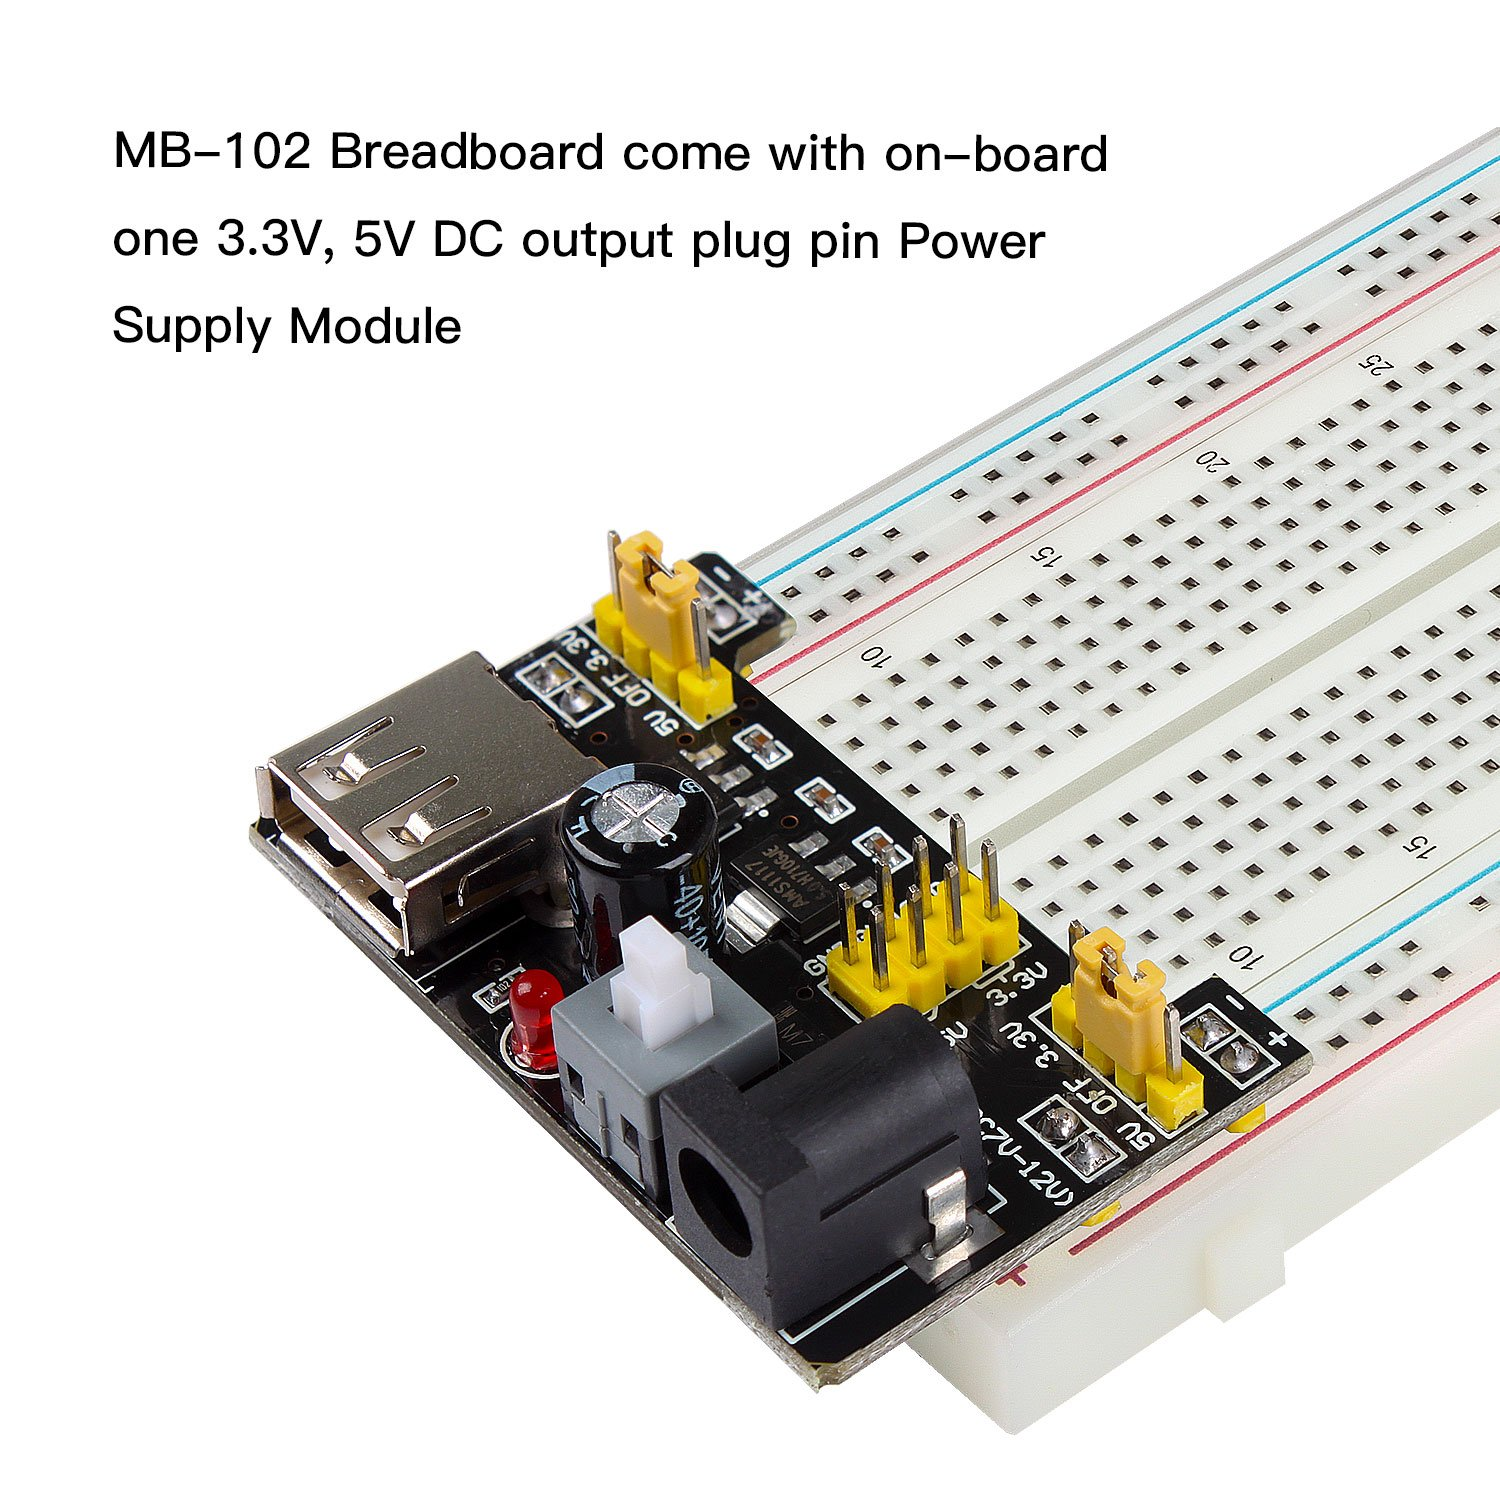 Smraza 33v 5v Power Supply Module For Arduino 830 Tie Connecting Source To Arduino39s Pin Electrical Engineering Points Solderless Breadboard 65pcs Jumper Wire Uno Mega2560 Computers